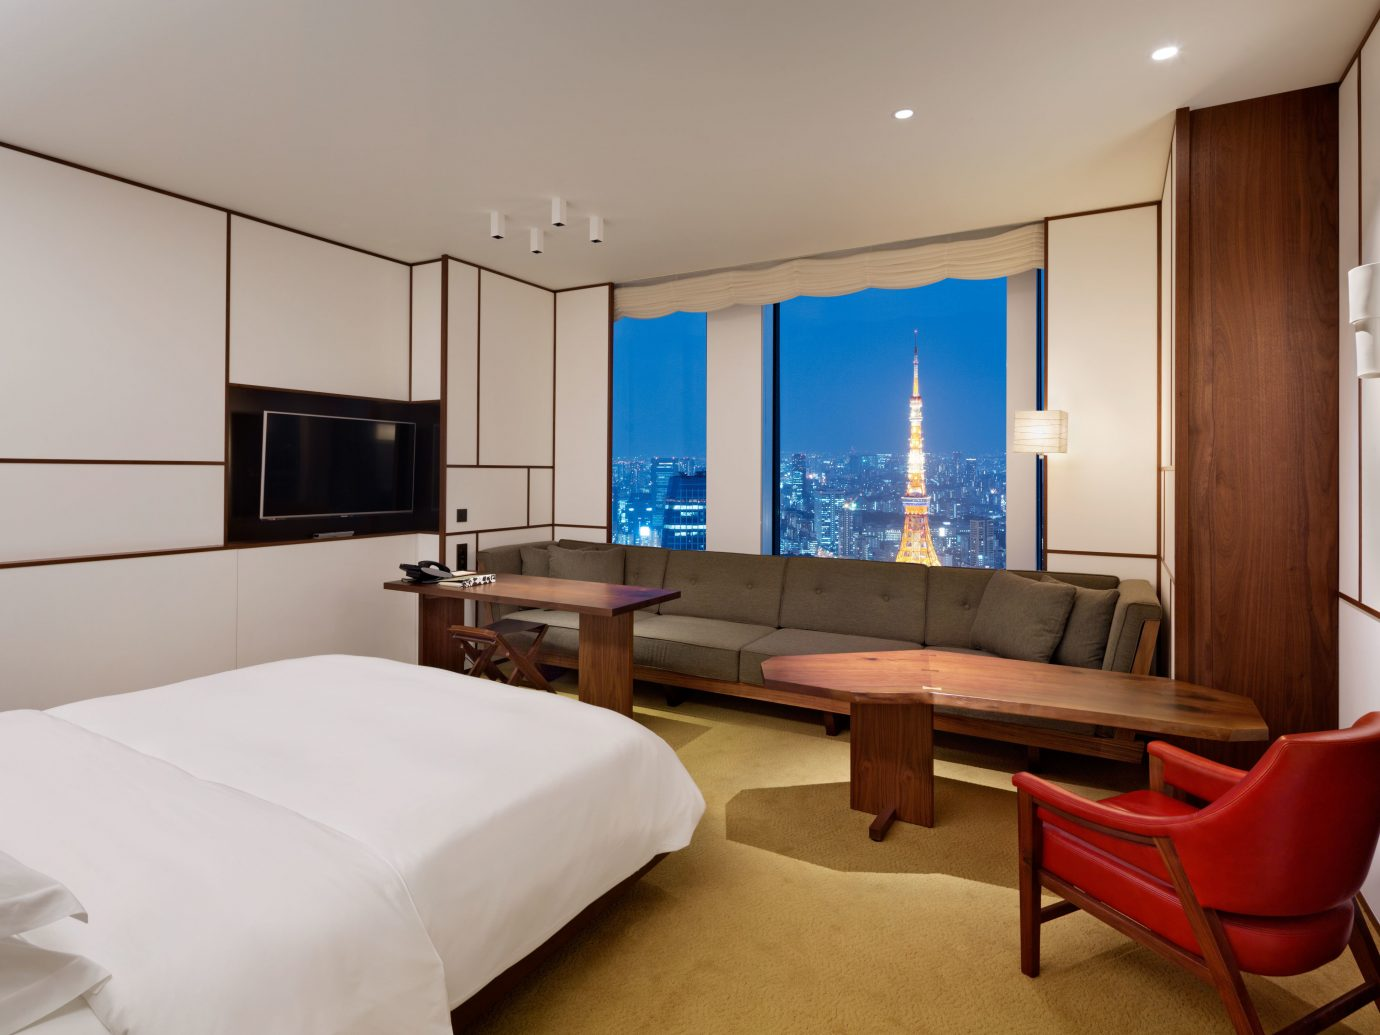 Bedroom City Hotels Japan Luxury Modern Scenic views Suite Tokyo indoor bed wall room floor ceiling hotel property window estate real estate interior design living room cottage condominium apartment flat furniture